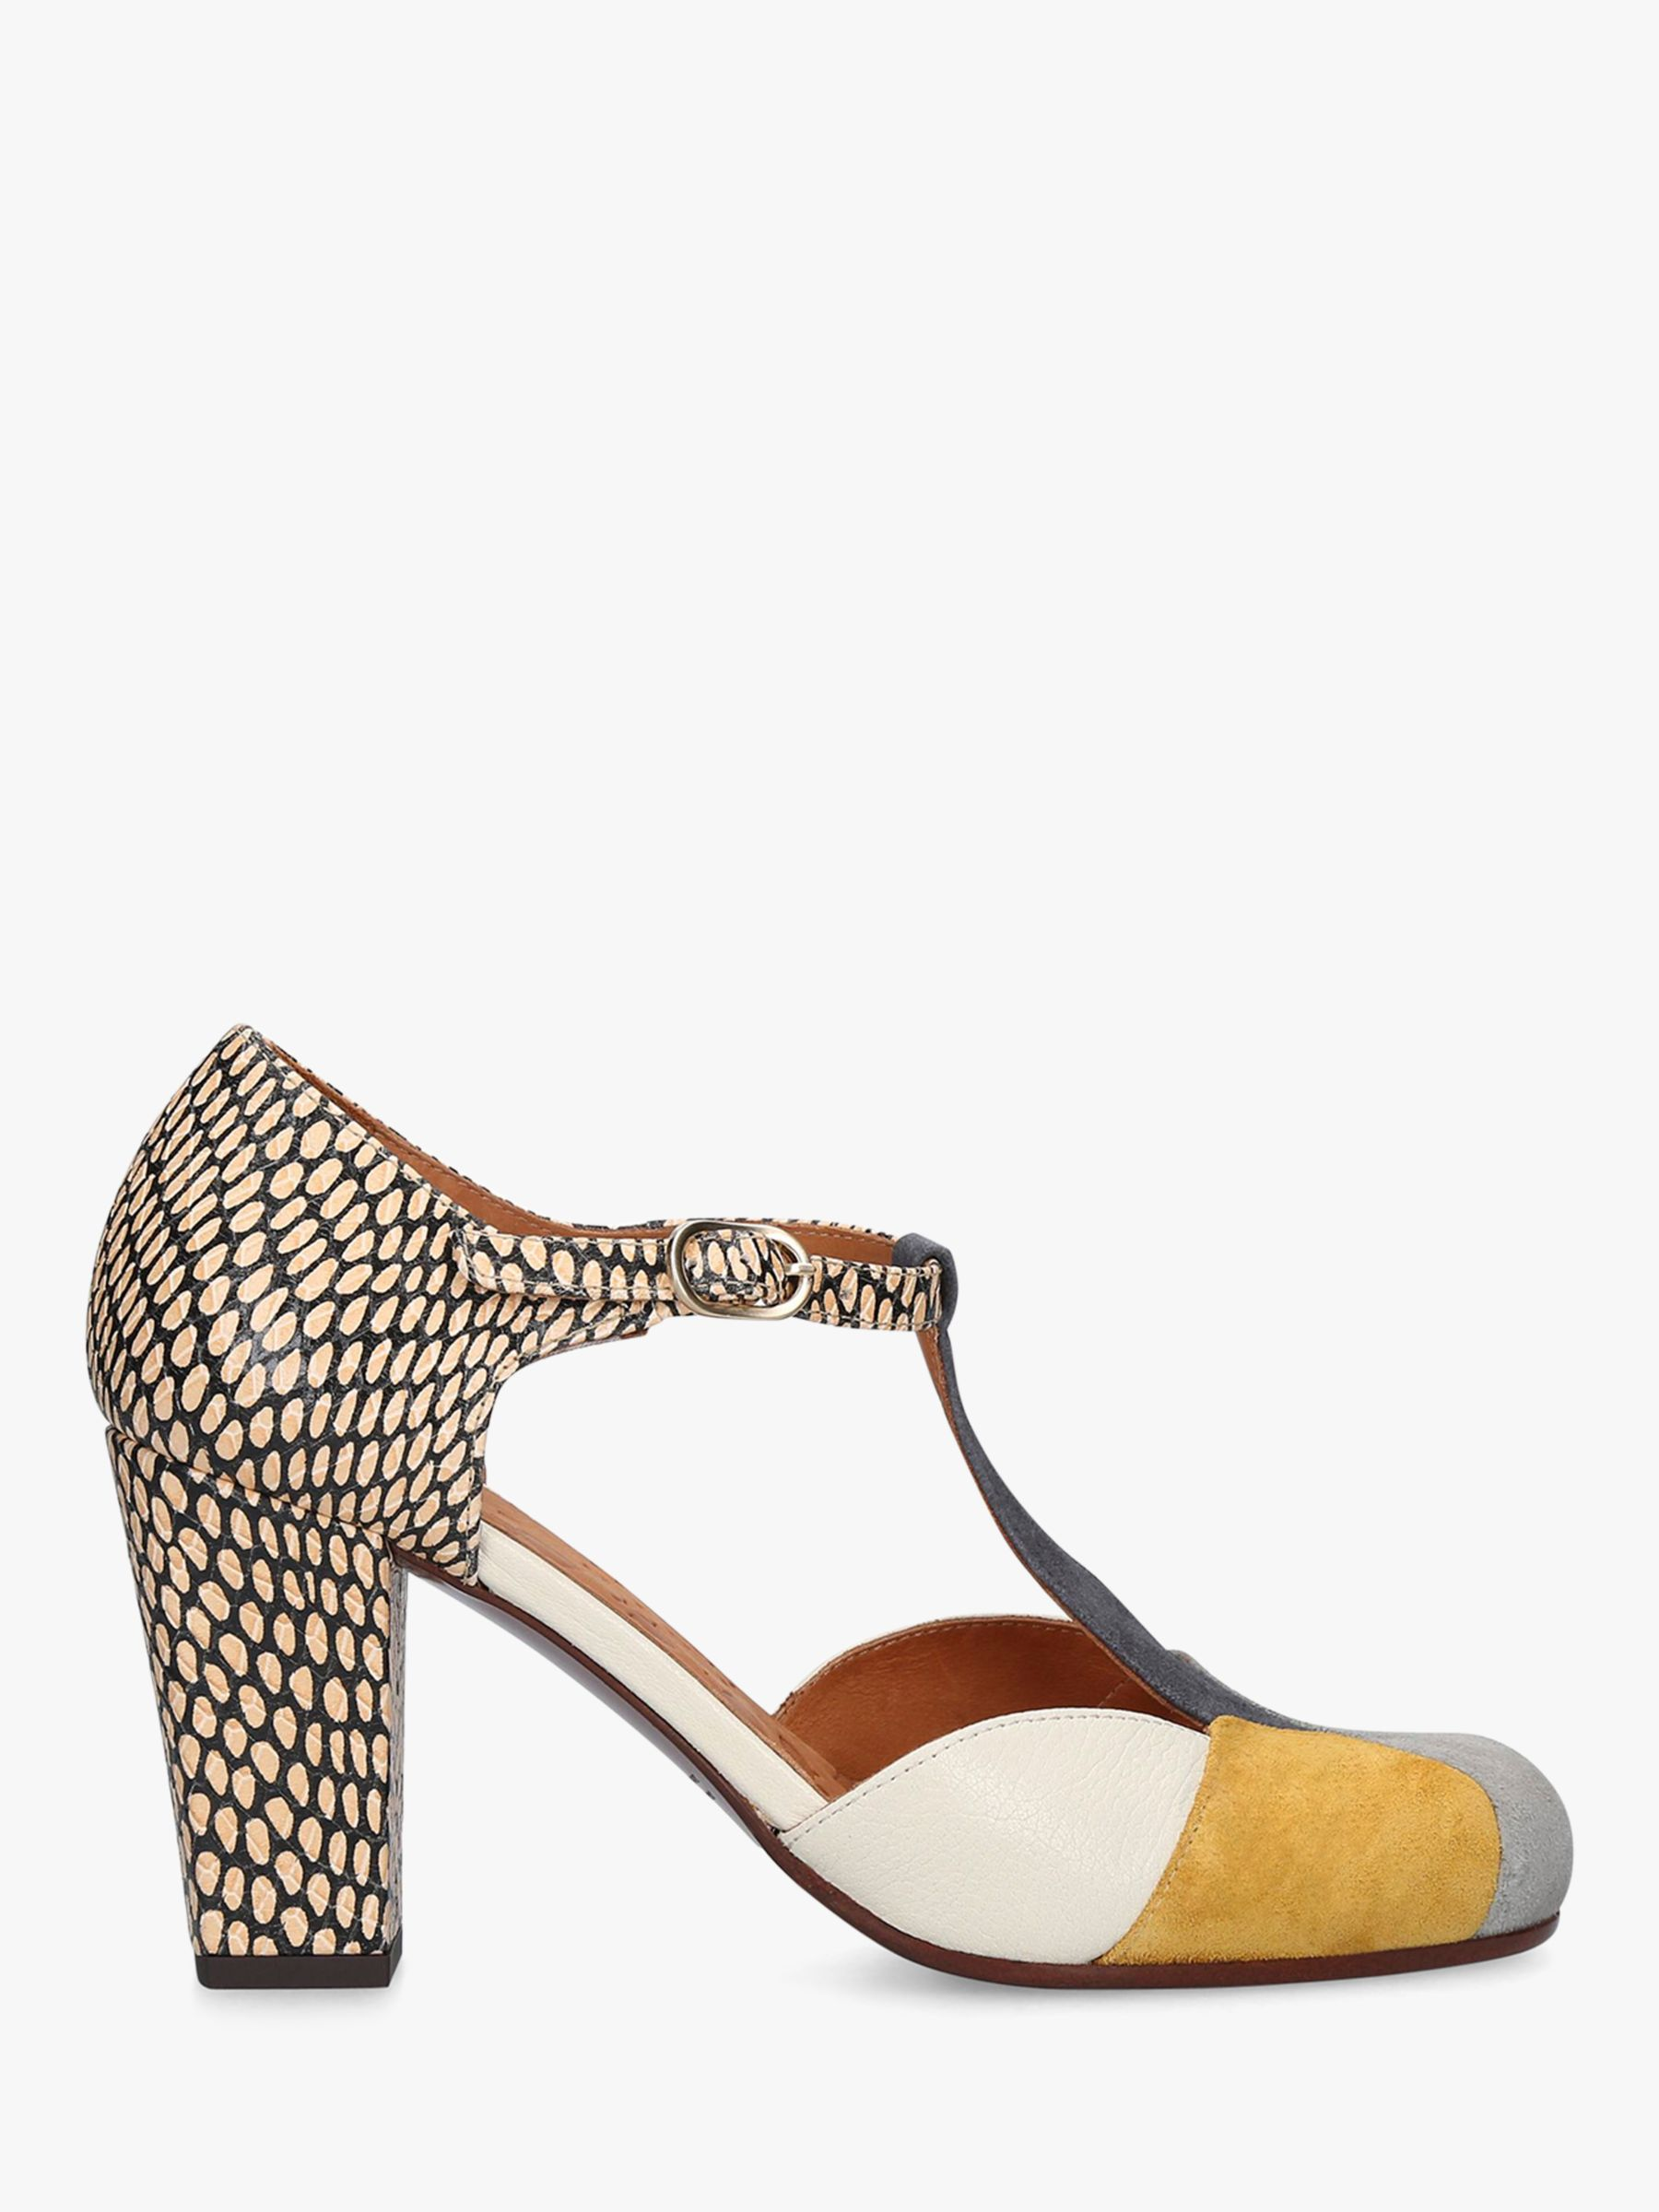 Chie Mihara Chie Mihara Urit T-Bar Suede Cone Heel Court Shoes, Multi